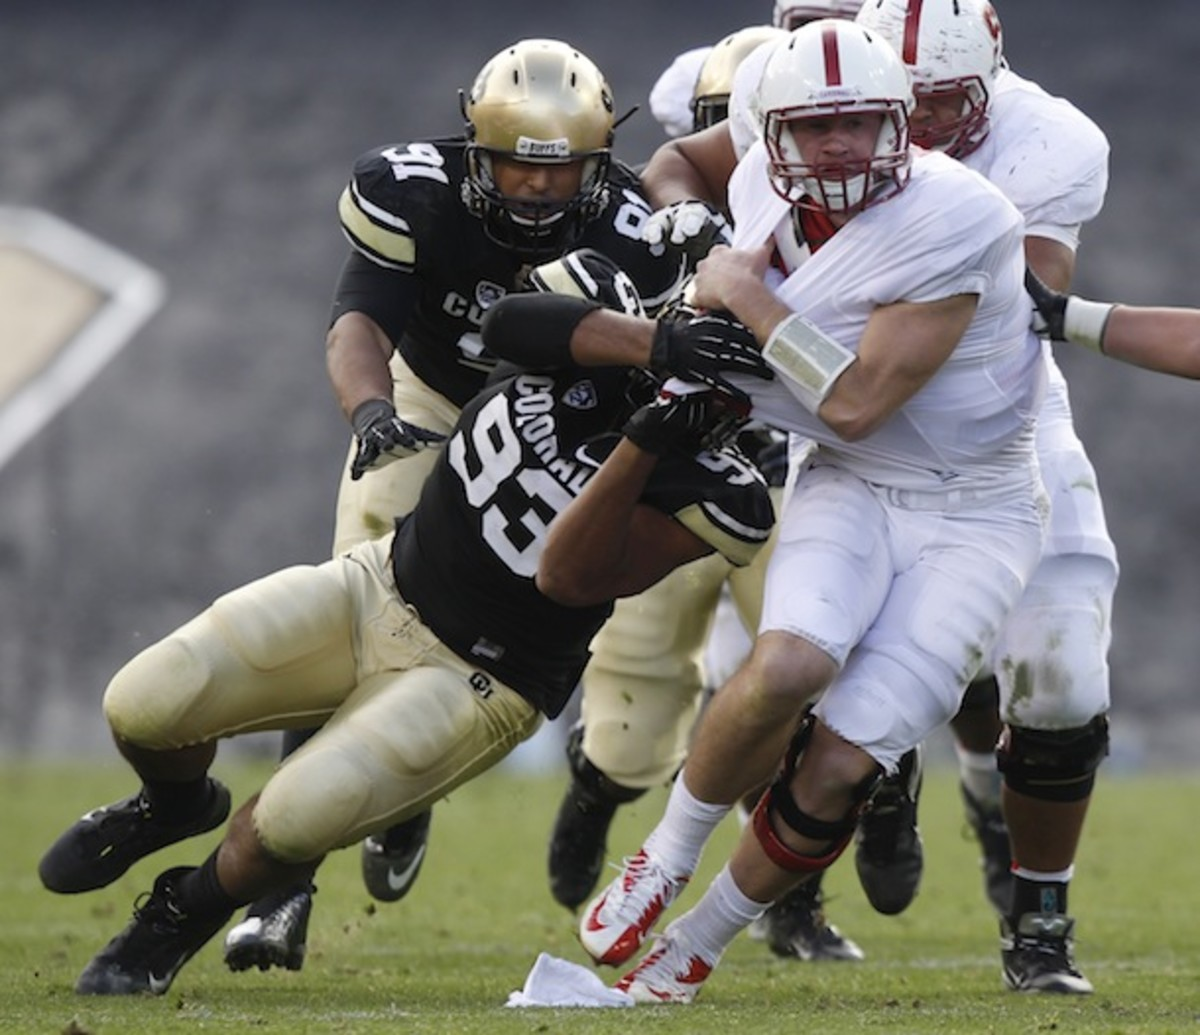 At left, Samson Kafovalu tackles Stanford's Kevin Hogan as though he were a short brick wall. (AP)